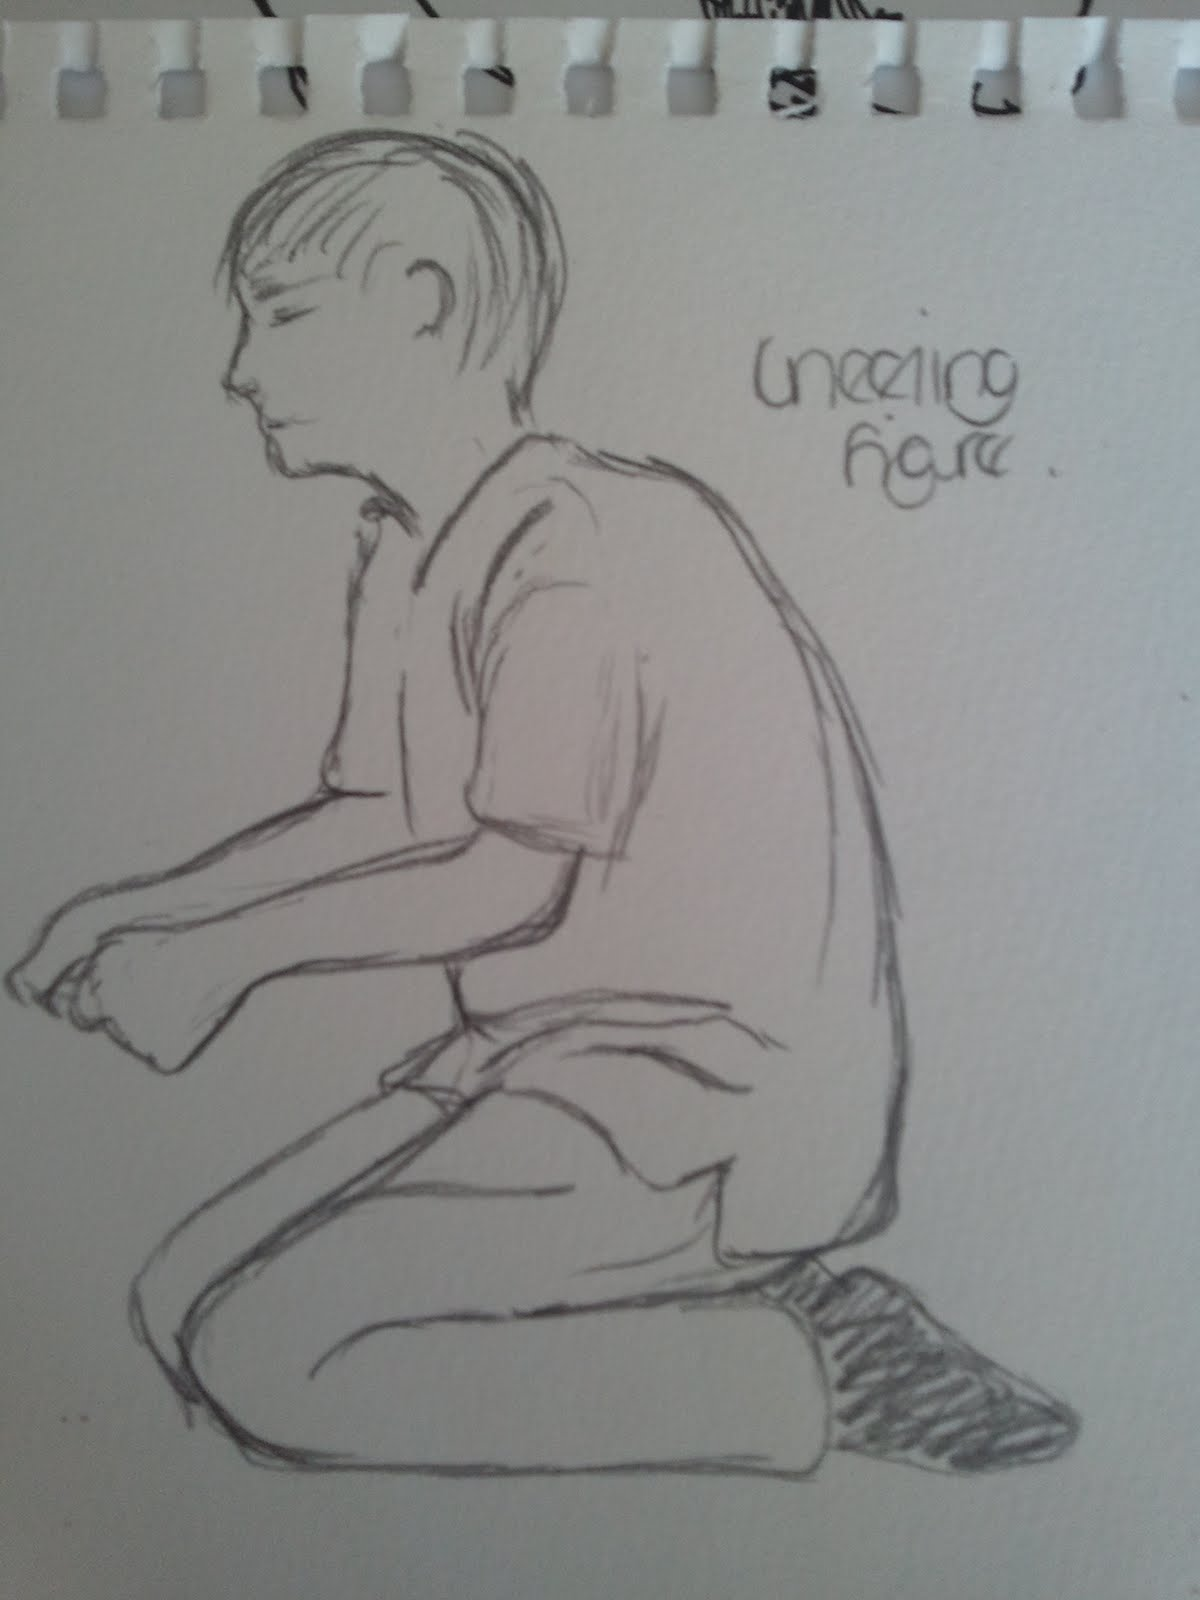 How To Draw A Person Kneeling : person, kneeling, Someone, Kneeling